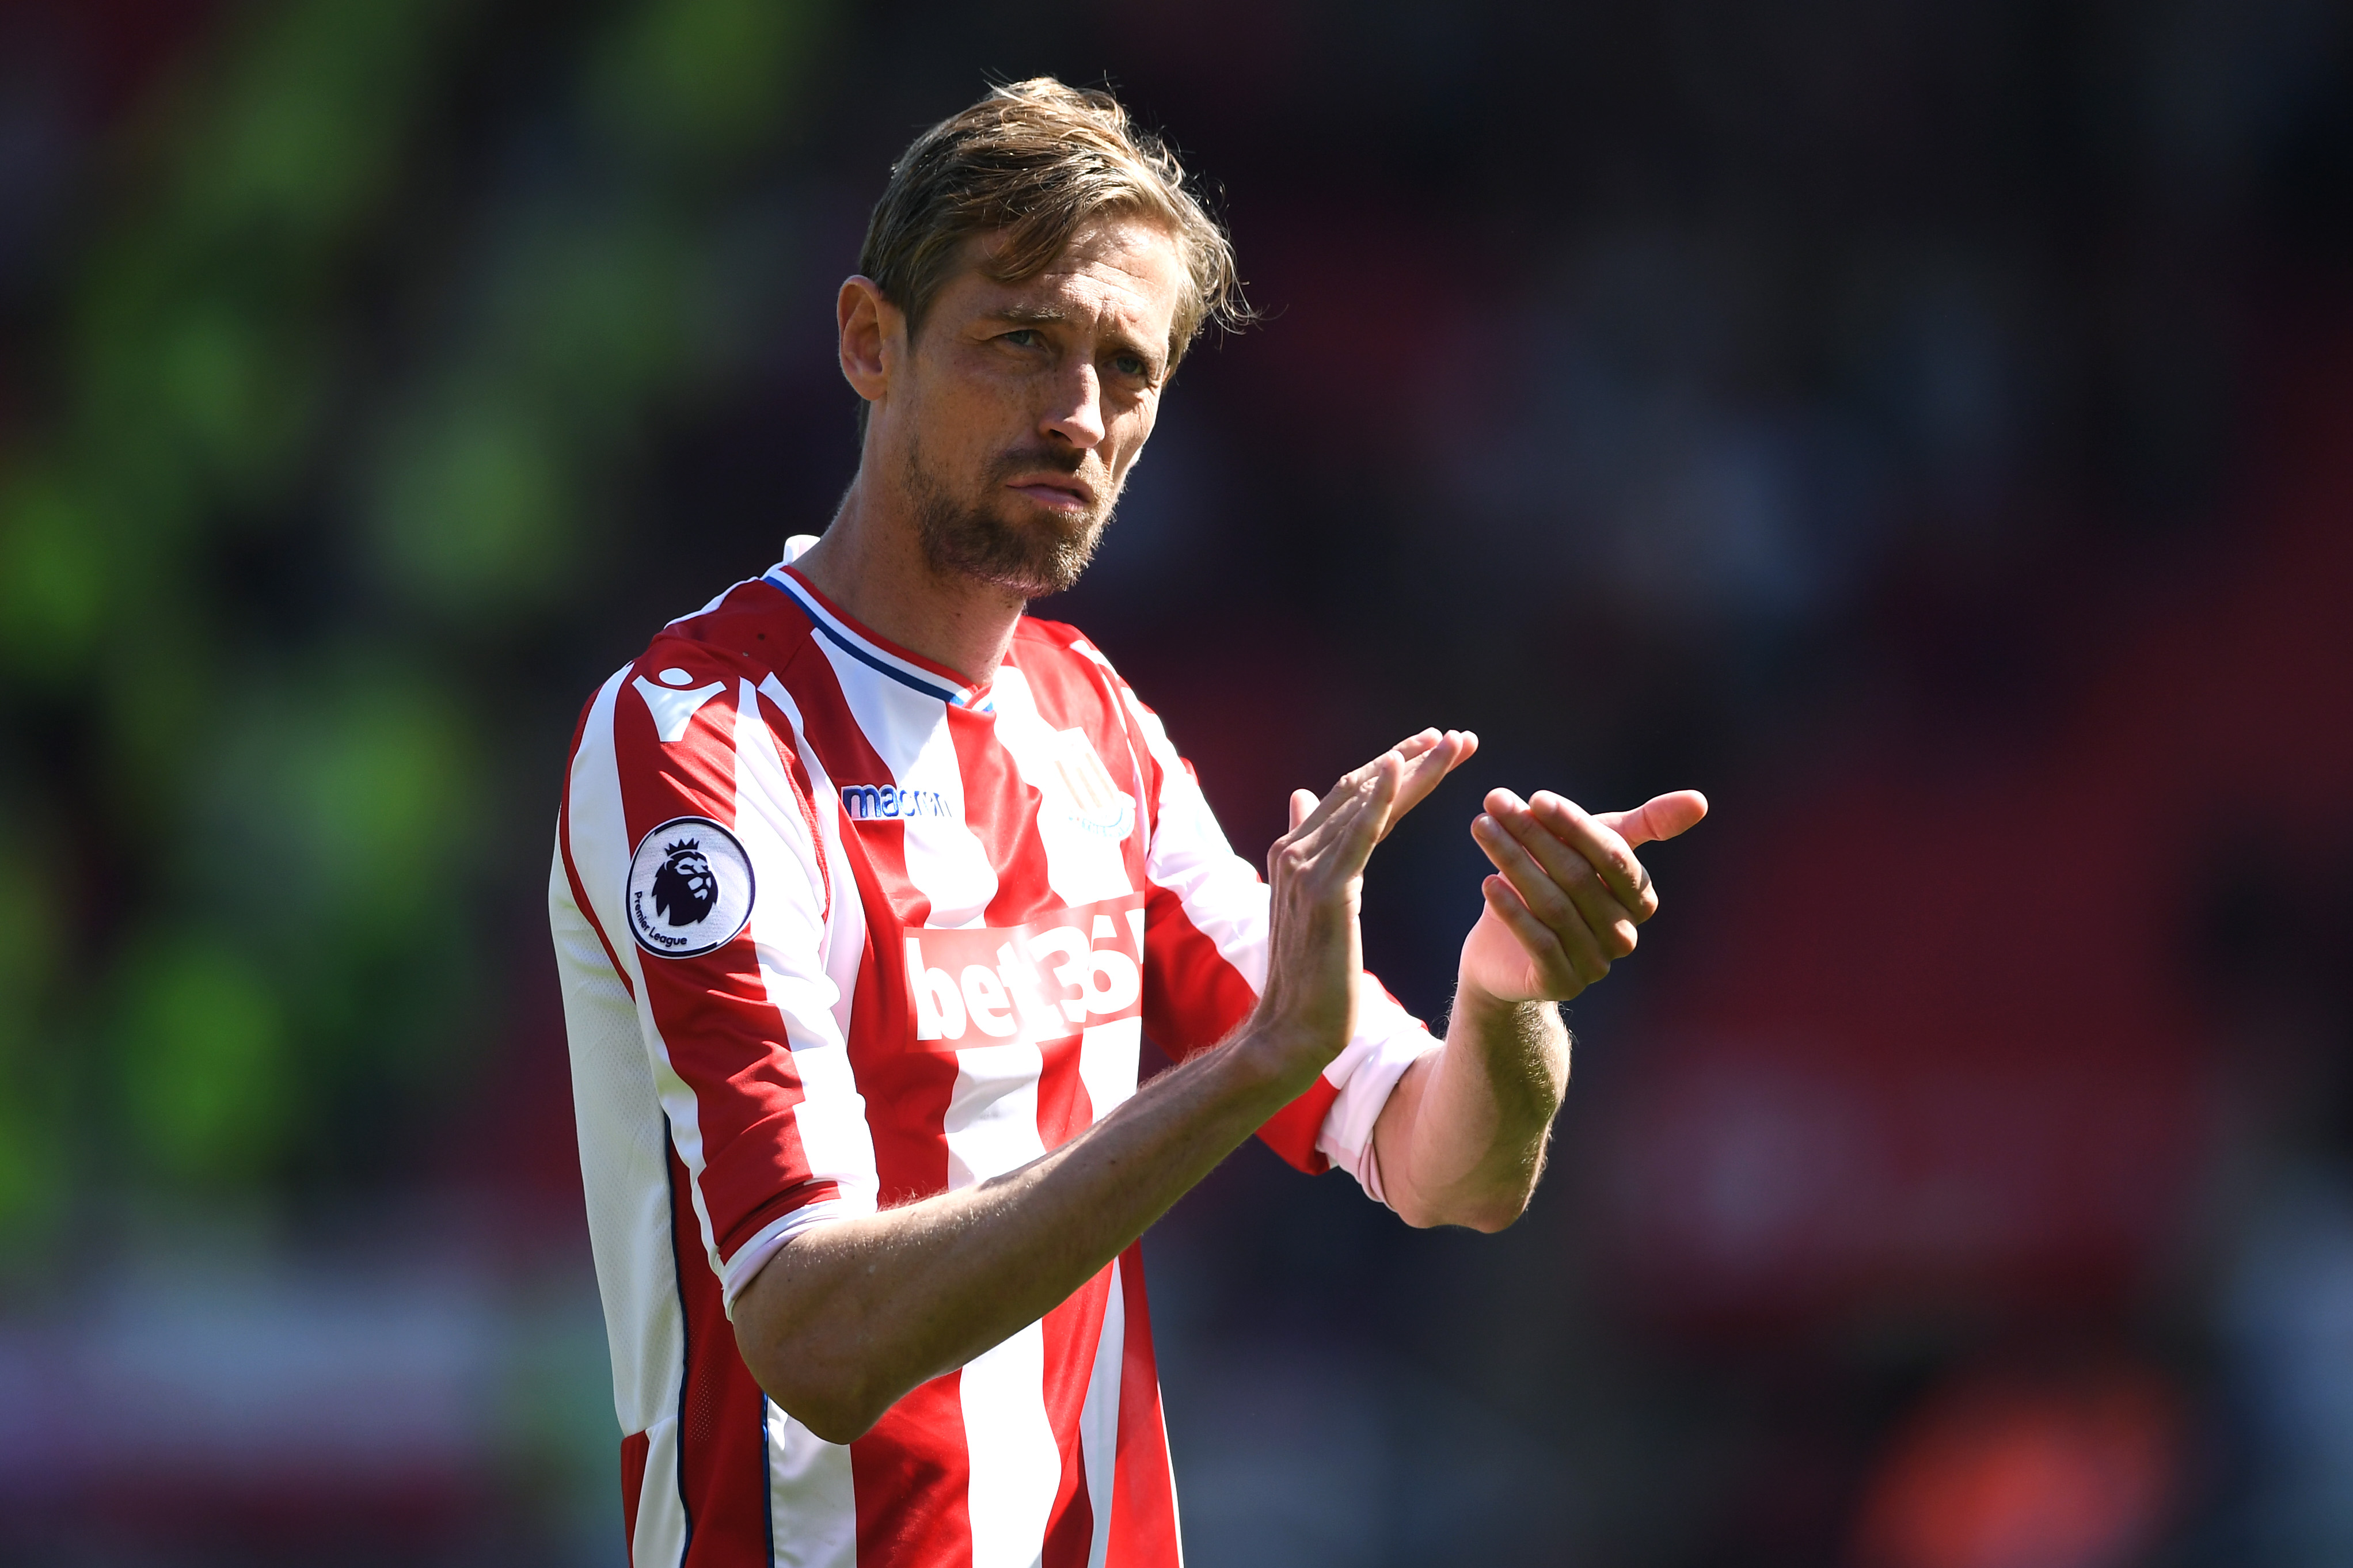 Peter Crouch left Stoke in January to join Burnley